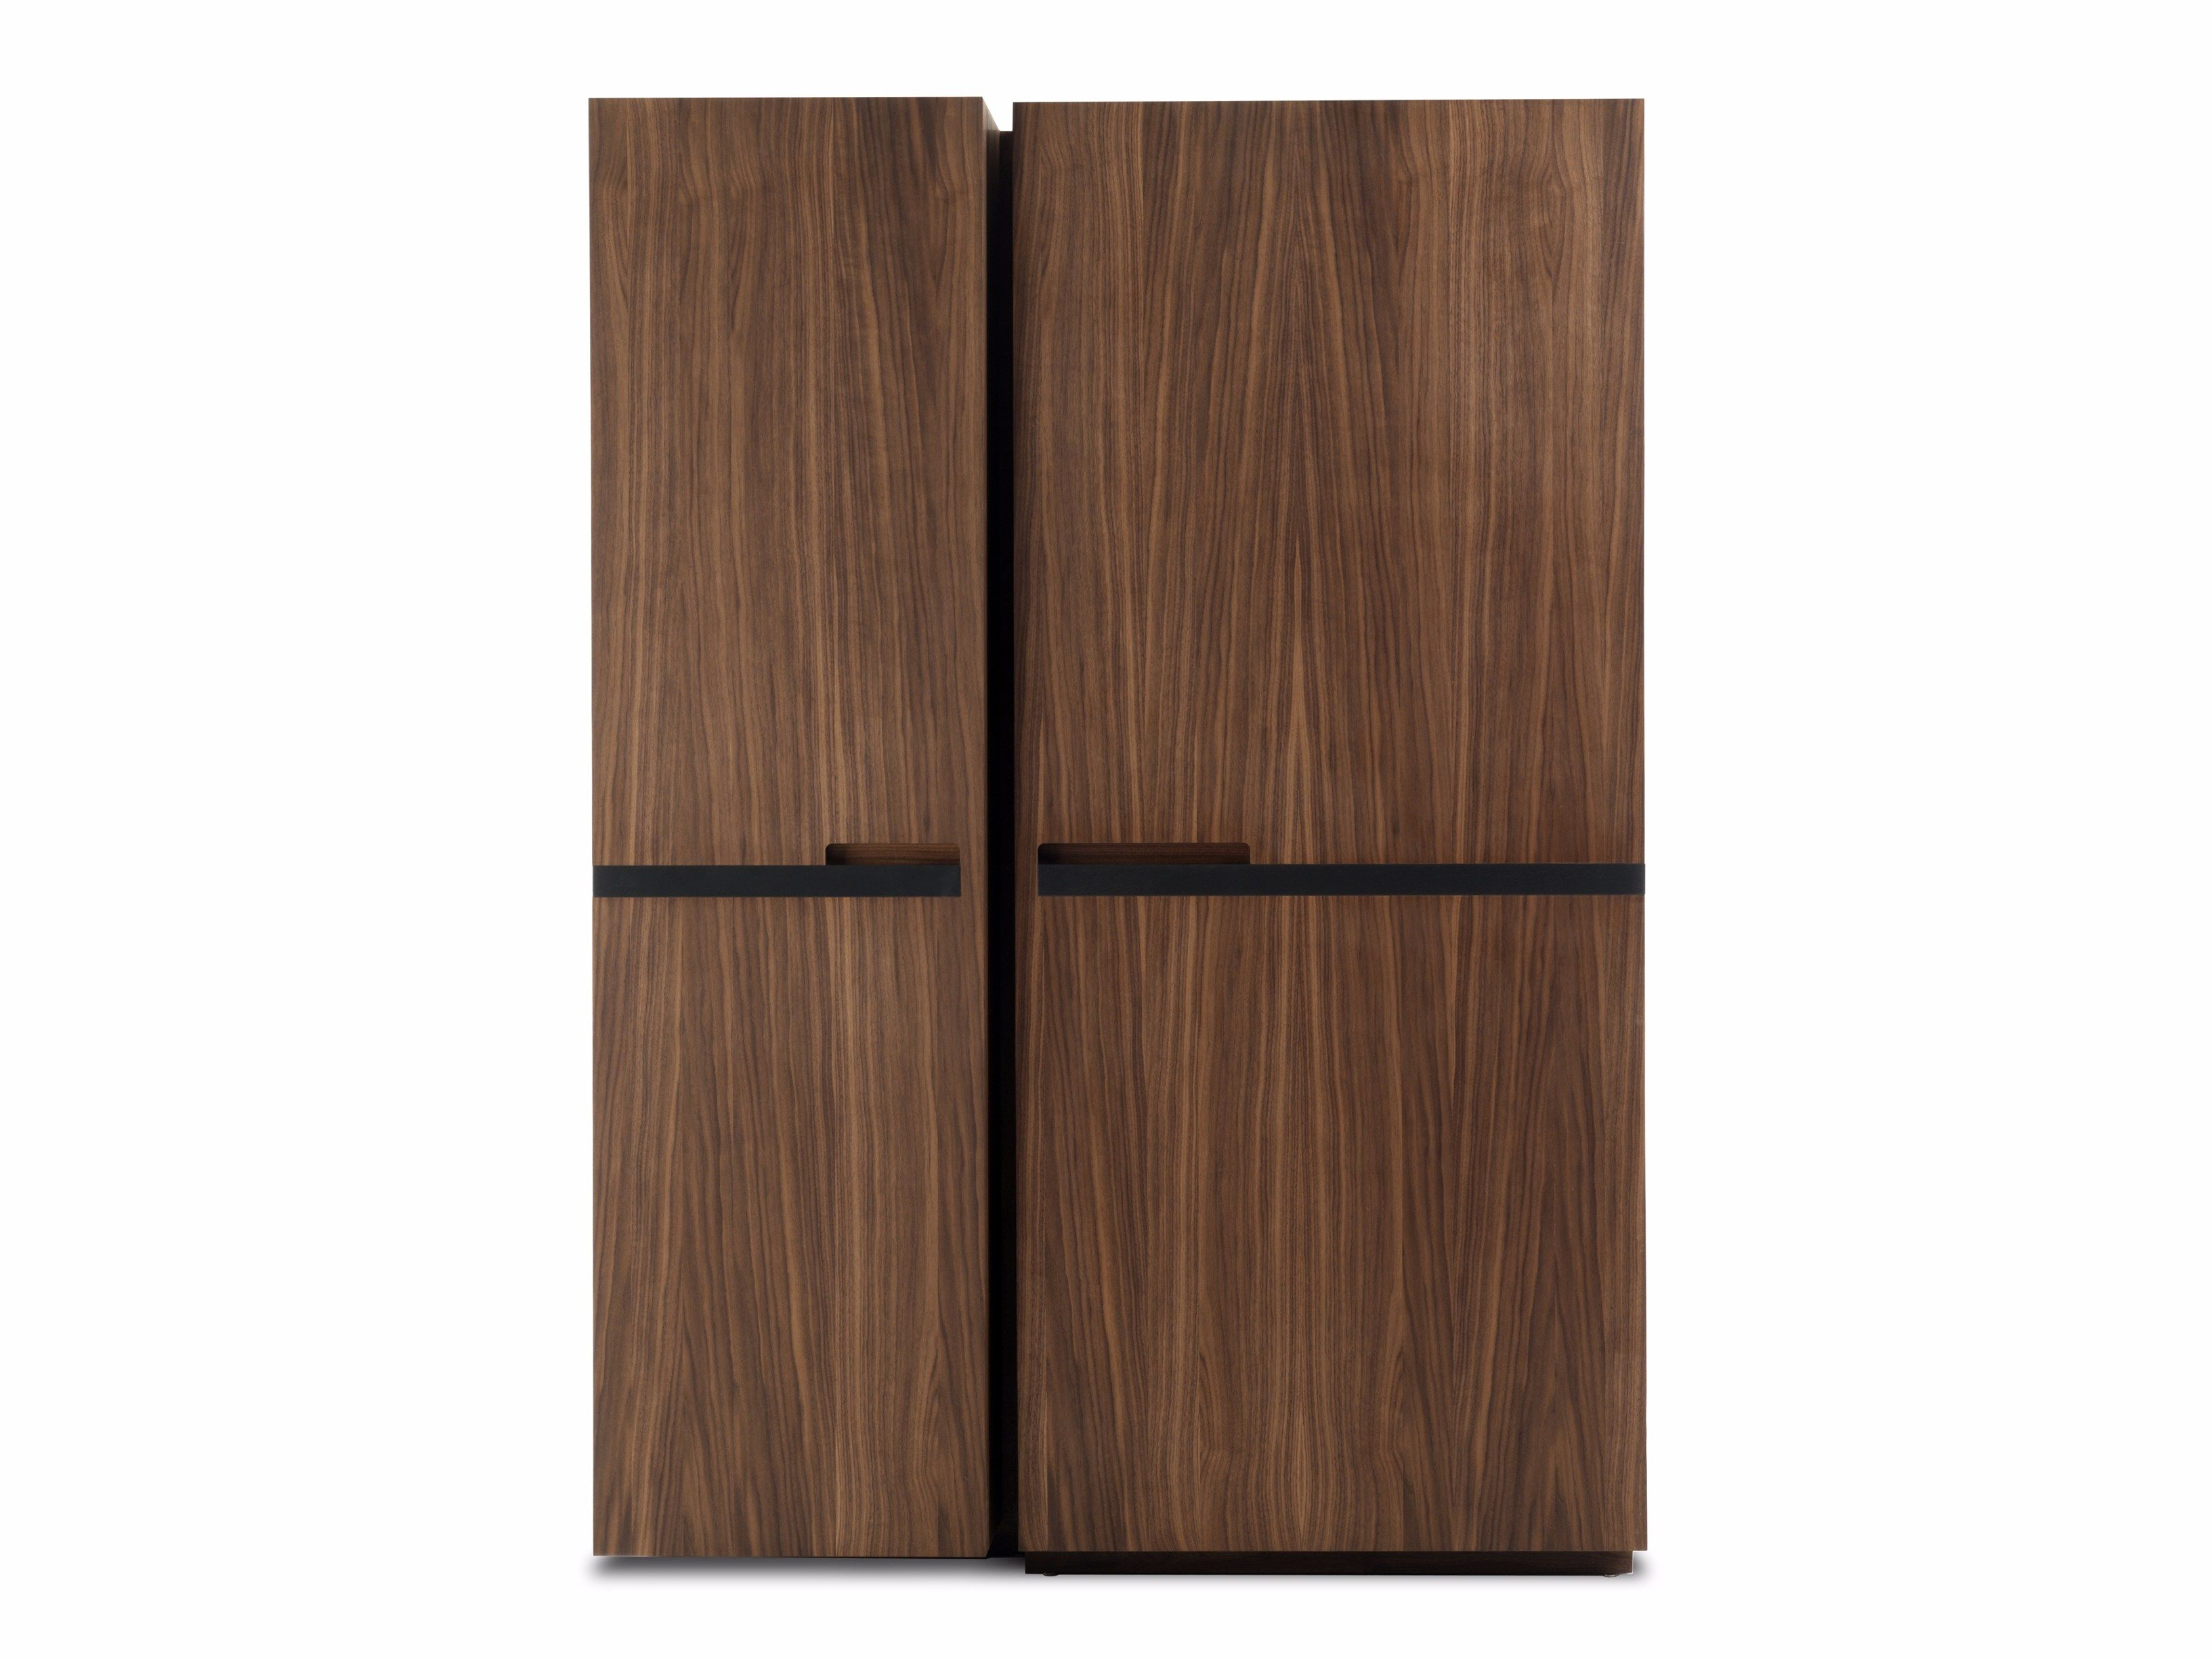 Nuit Wooden Wardrobe And Tvs # Meuble Tv Gisan